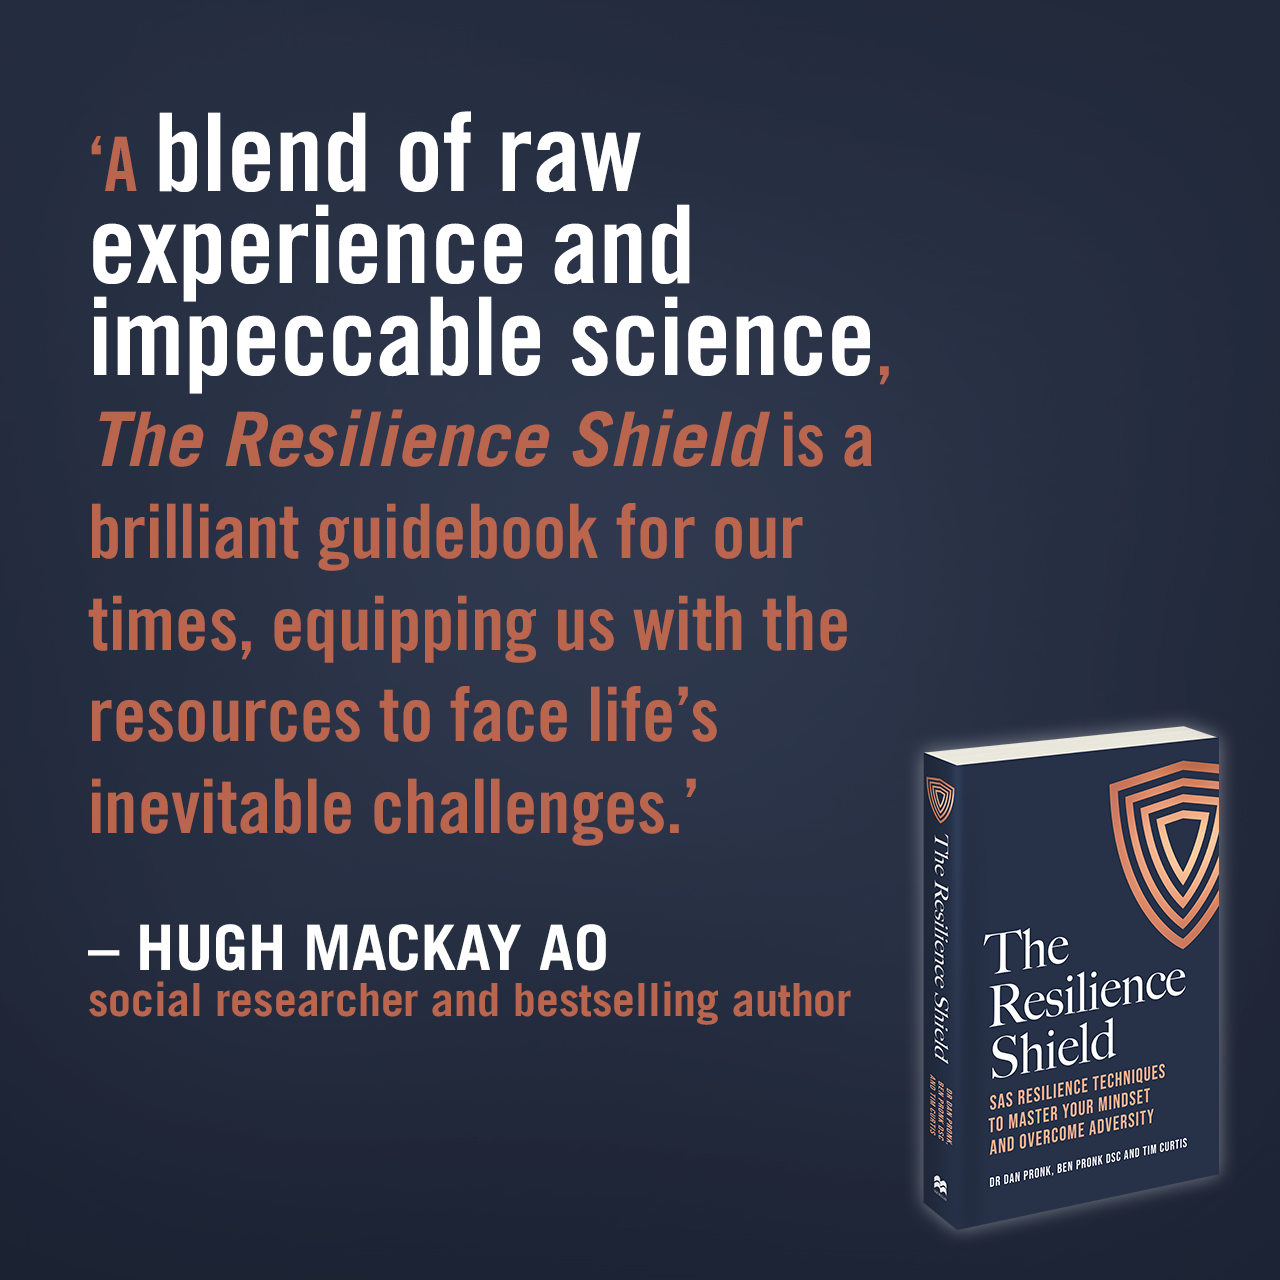 The Resilience Shield_Quote Tile_HUGH MACKAY AO